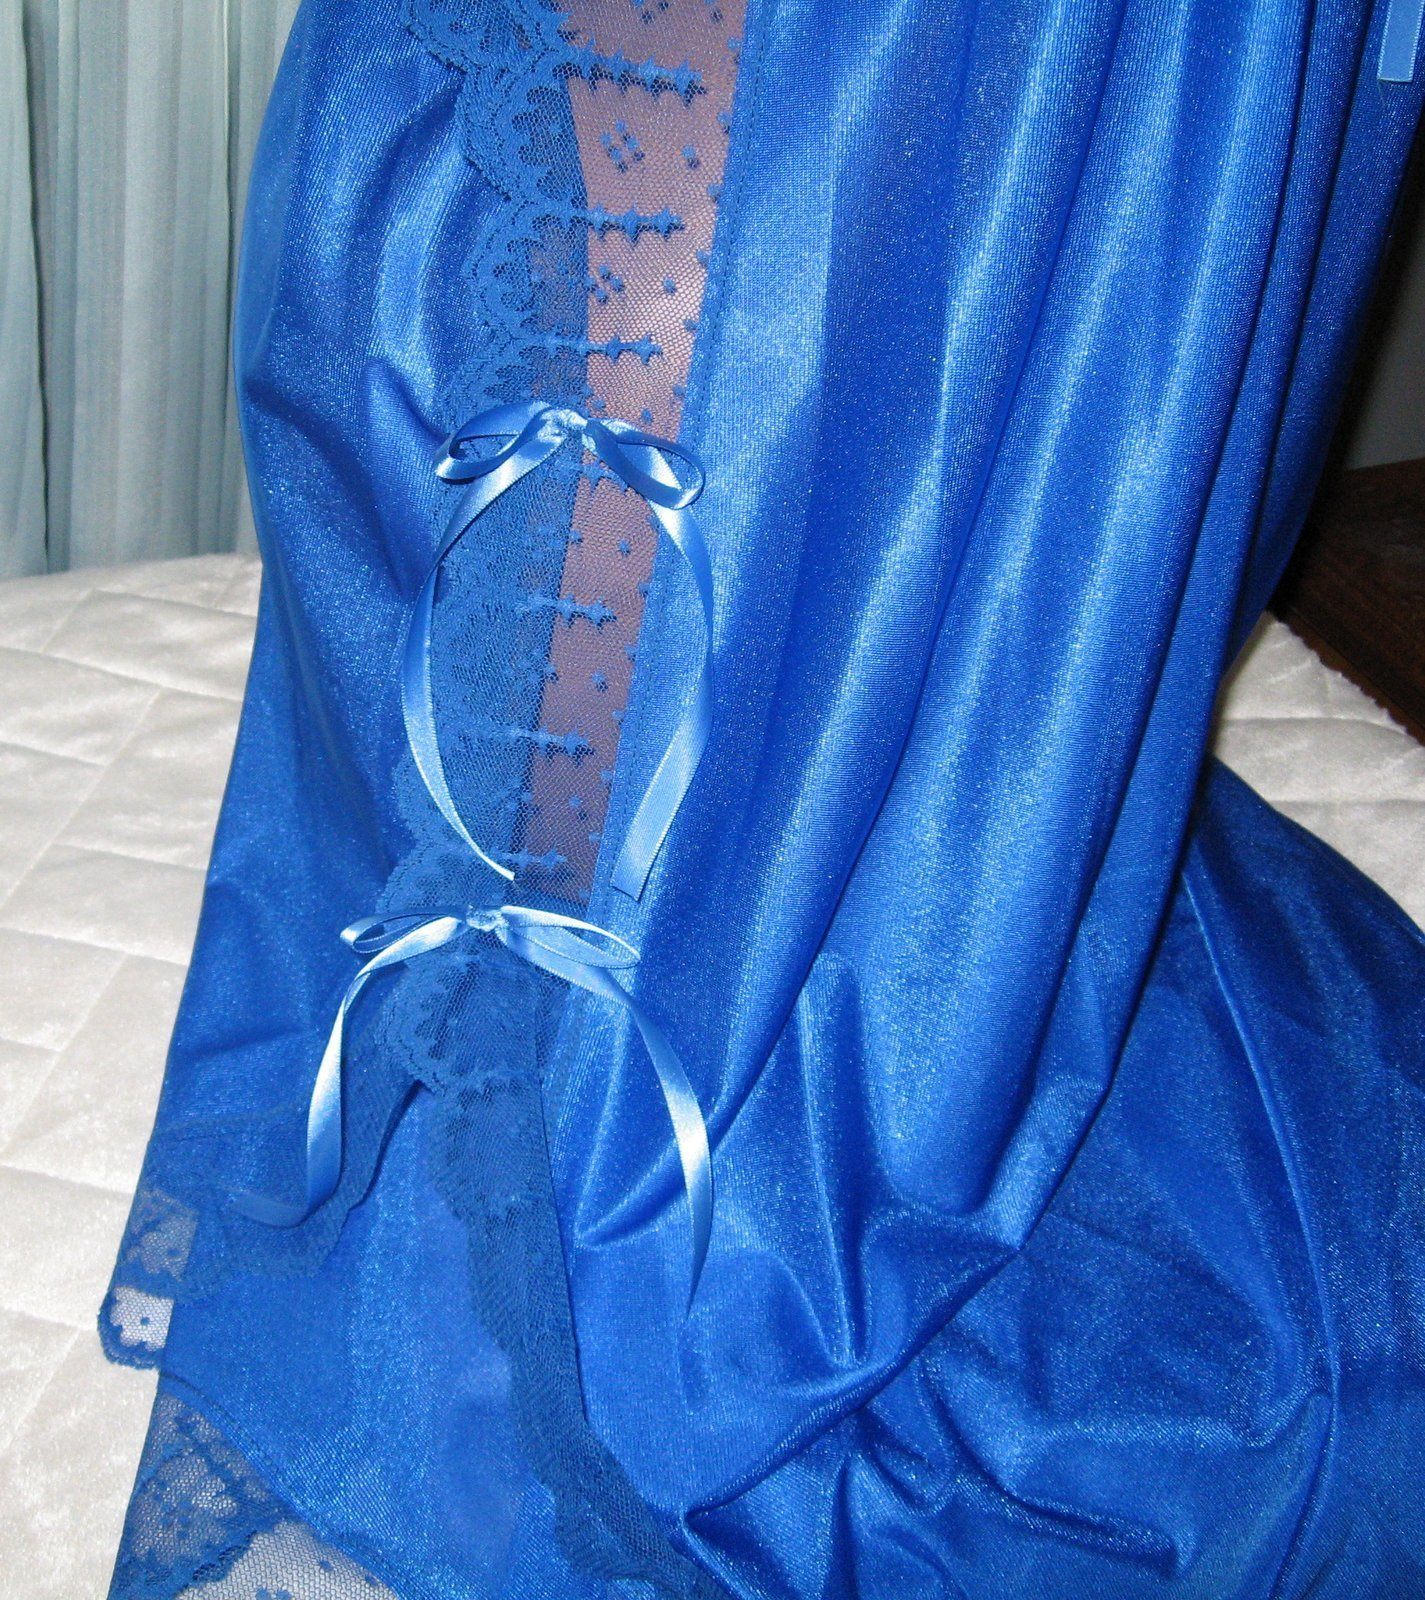 Royal Blue Nylon Lace Side Toga Style Long Nightgown M Lingerie Sleepwear